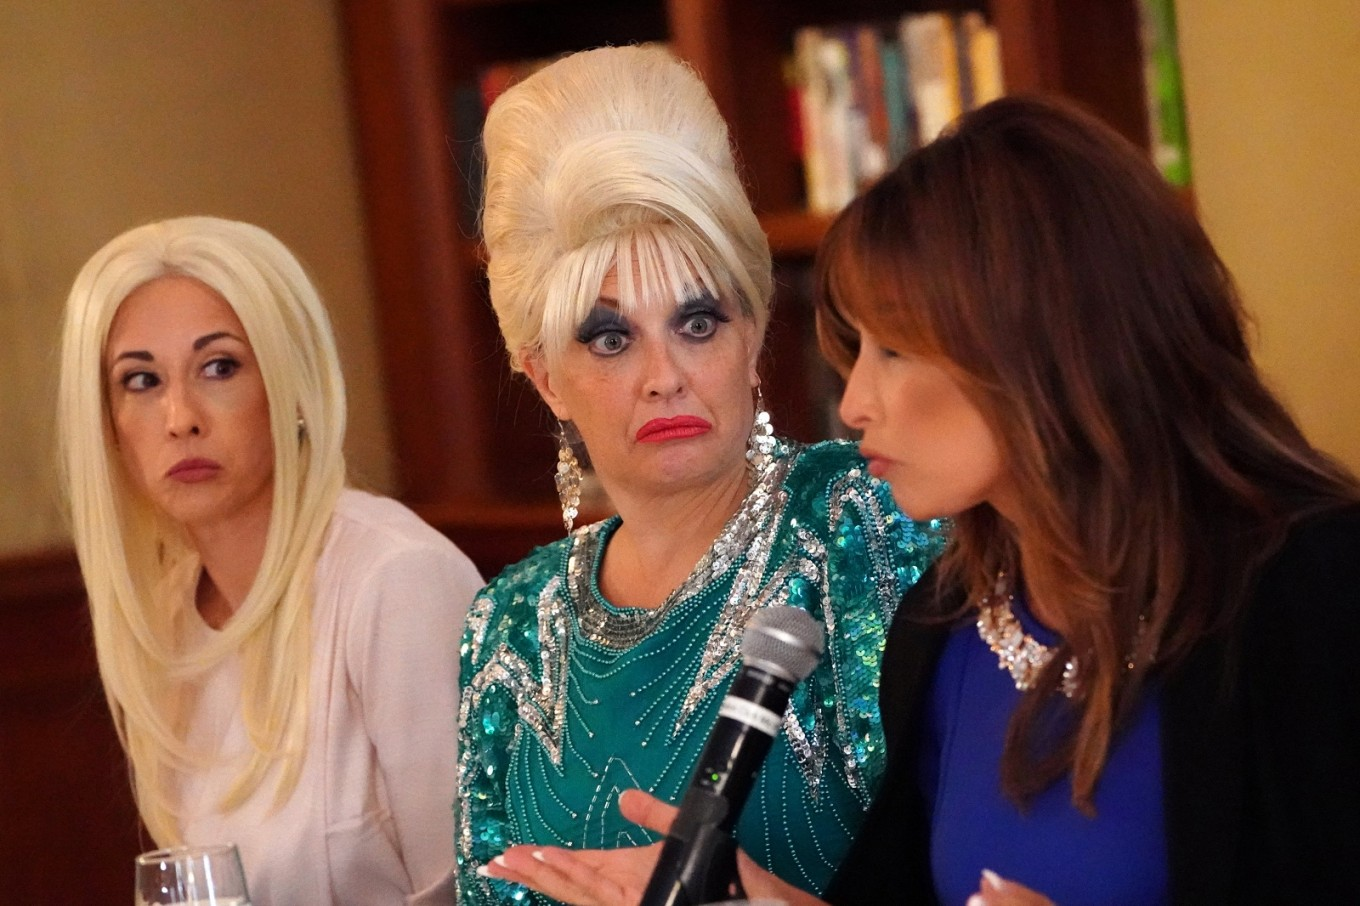 Fake Trump family riffs on real news in musical spoof